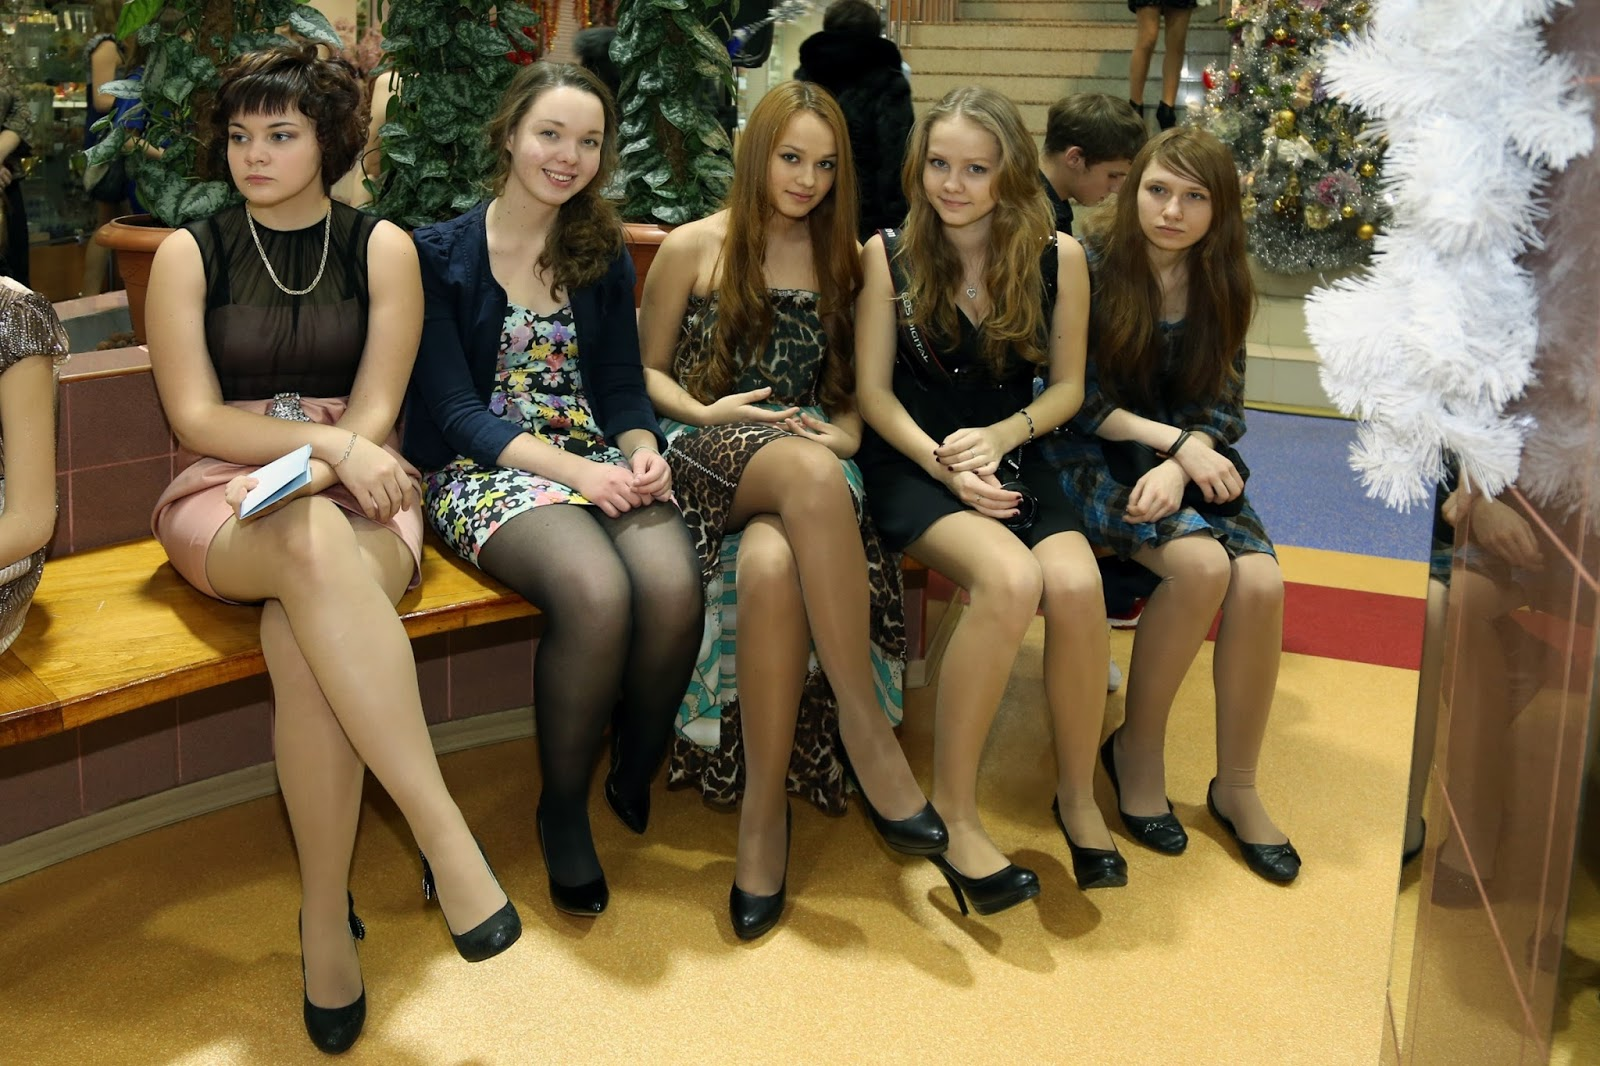 Teens in tight leggings